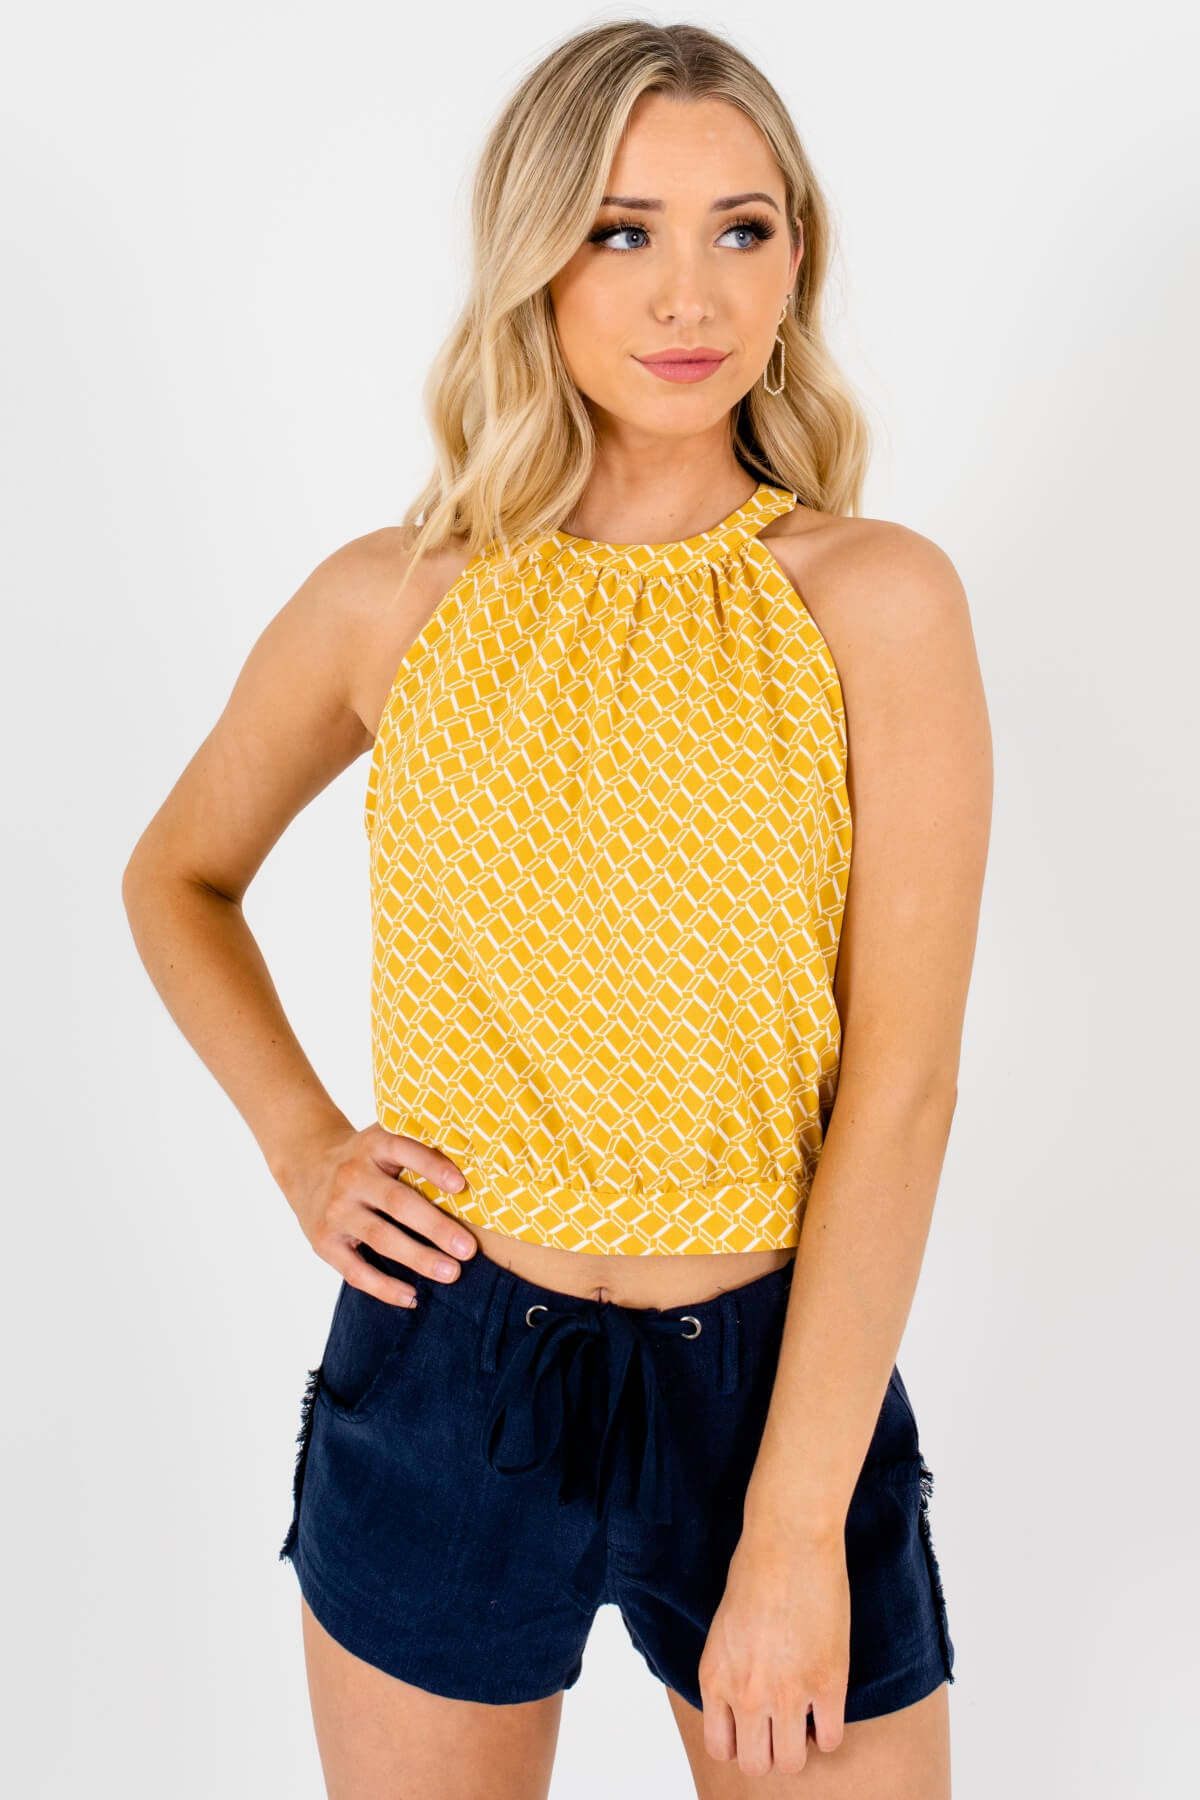 Yellow and White Geometric Patterned Boutique Tank Tops for Women